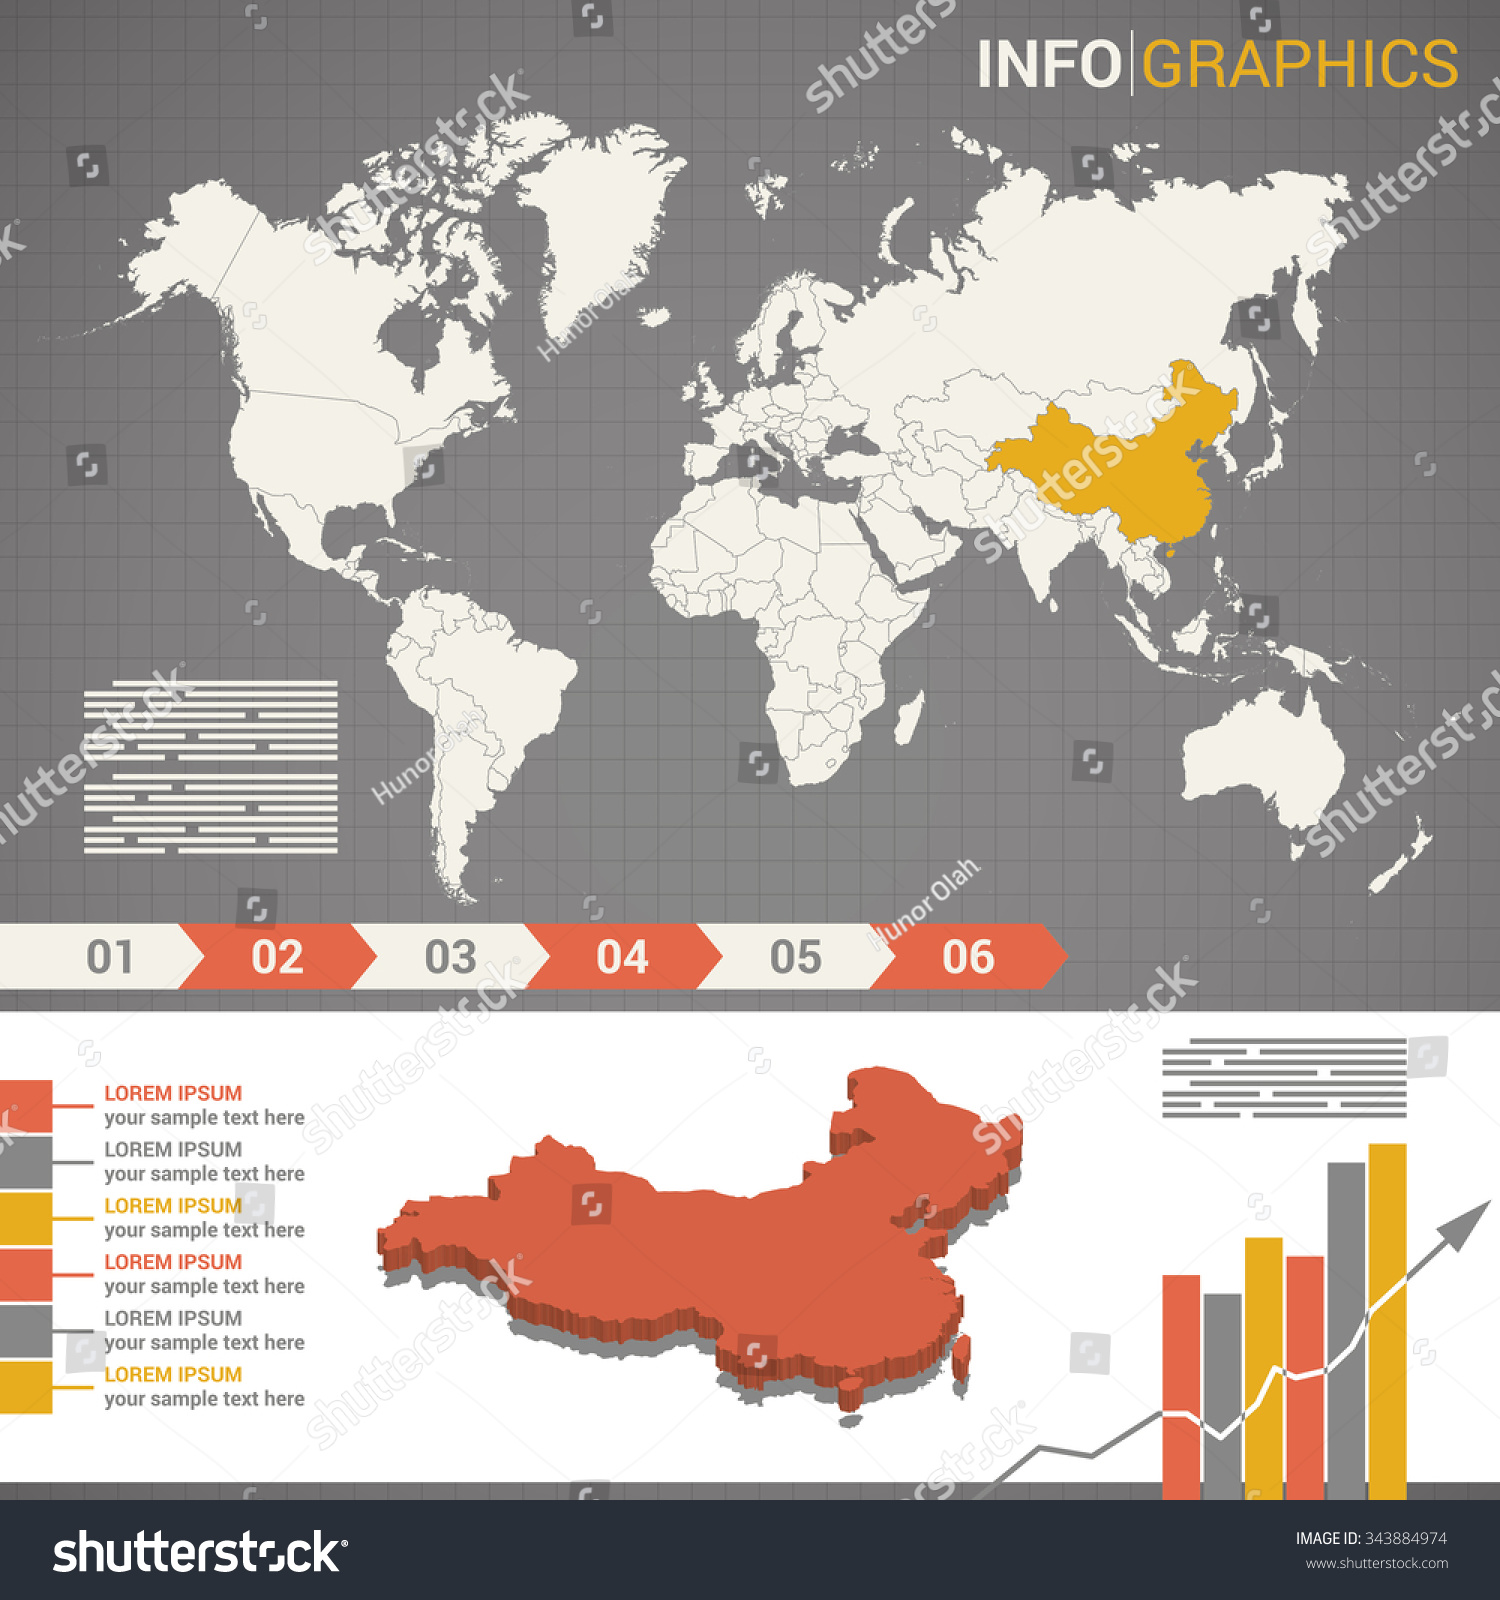 World map infographic elements 3 d map stock photo photo vector world map and infographic elements with the 3d map of china gumiabroncs Gallery